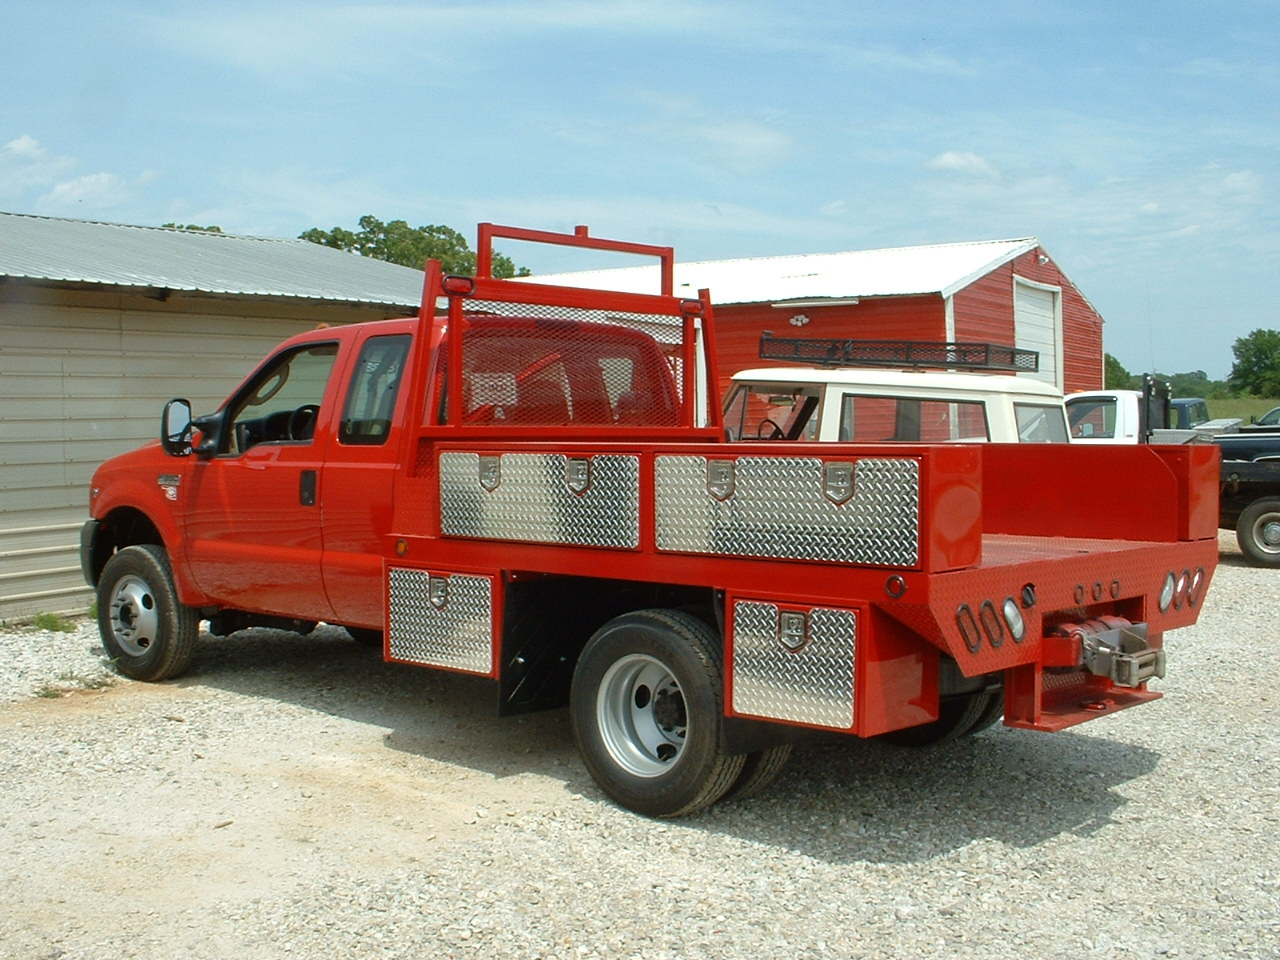 Brush Fire Trucks likewise Gooseneck Round Bale Trailers as well Used Welding Truck Beds as well Fuel Tank Tool Box For Flatbed Trucks additionally Vintage Coe Car Hauler Trucks For Sale. on custom hauler truck beds